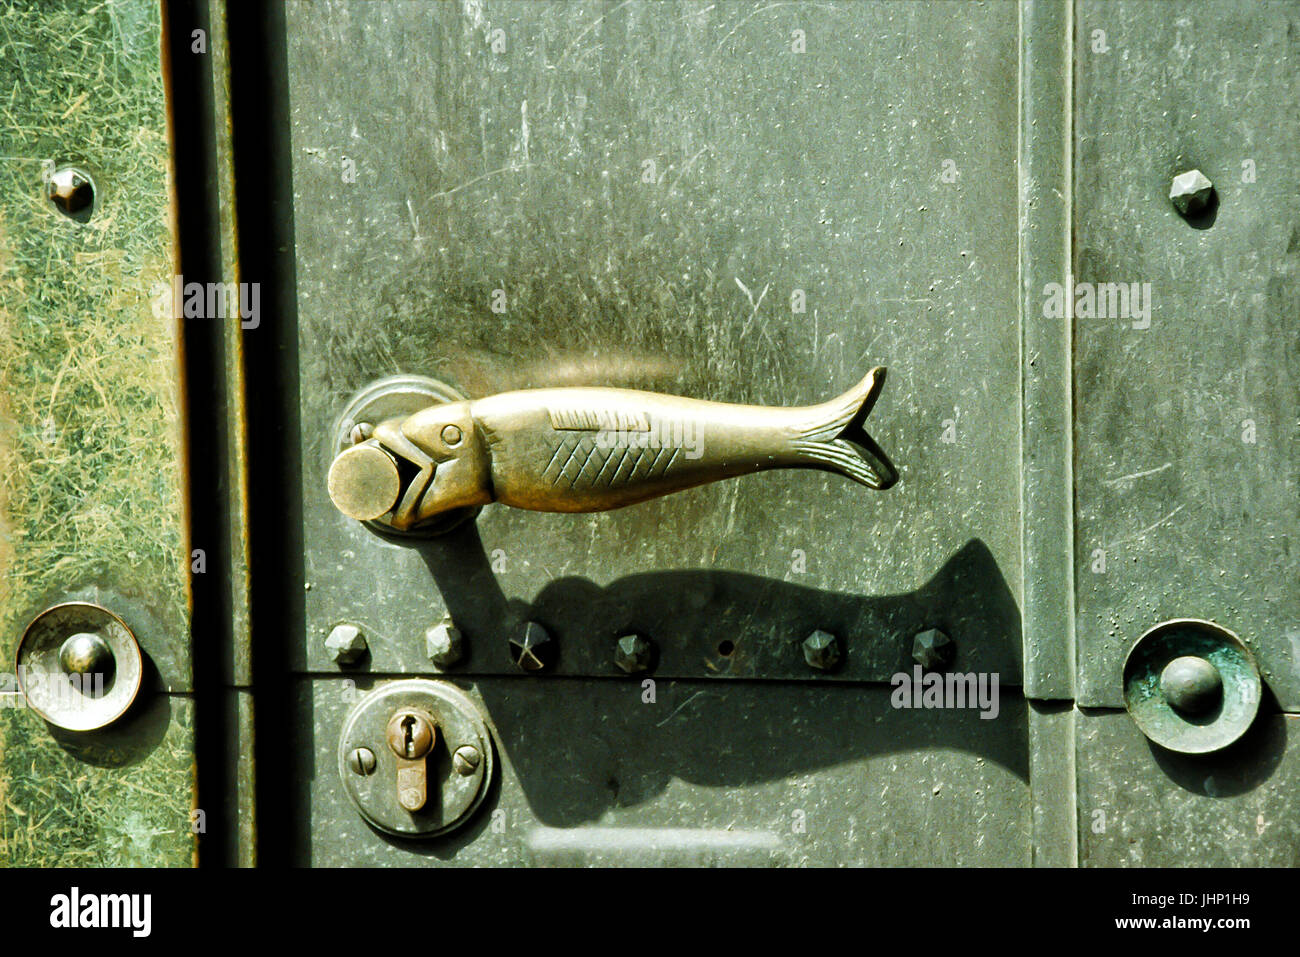 Fish shaped door handle on an old building in Germany. - Stock Image